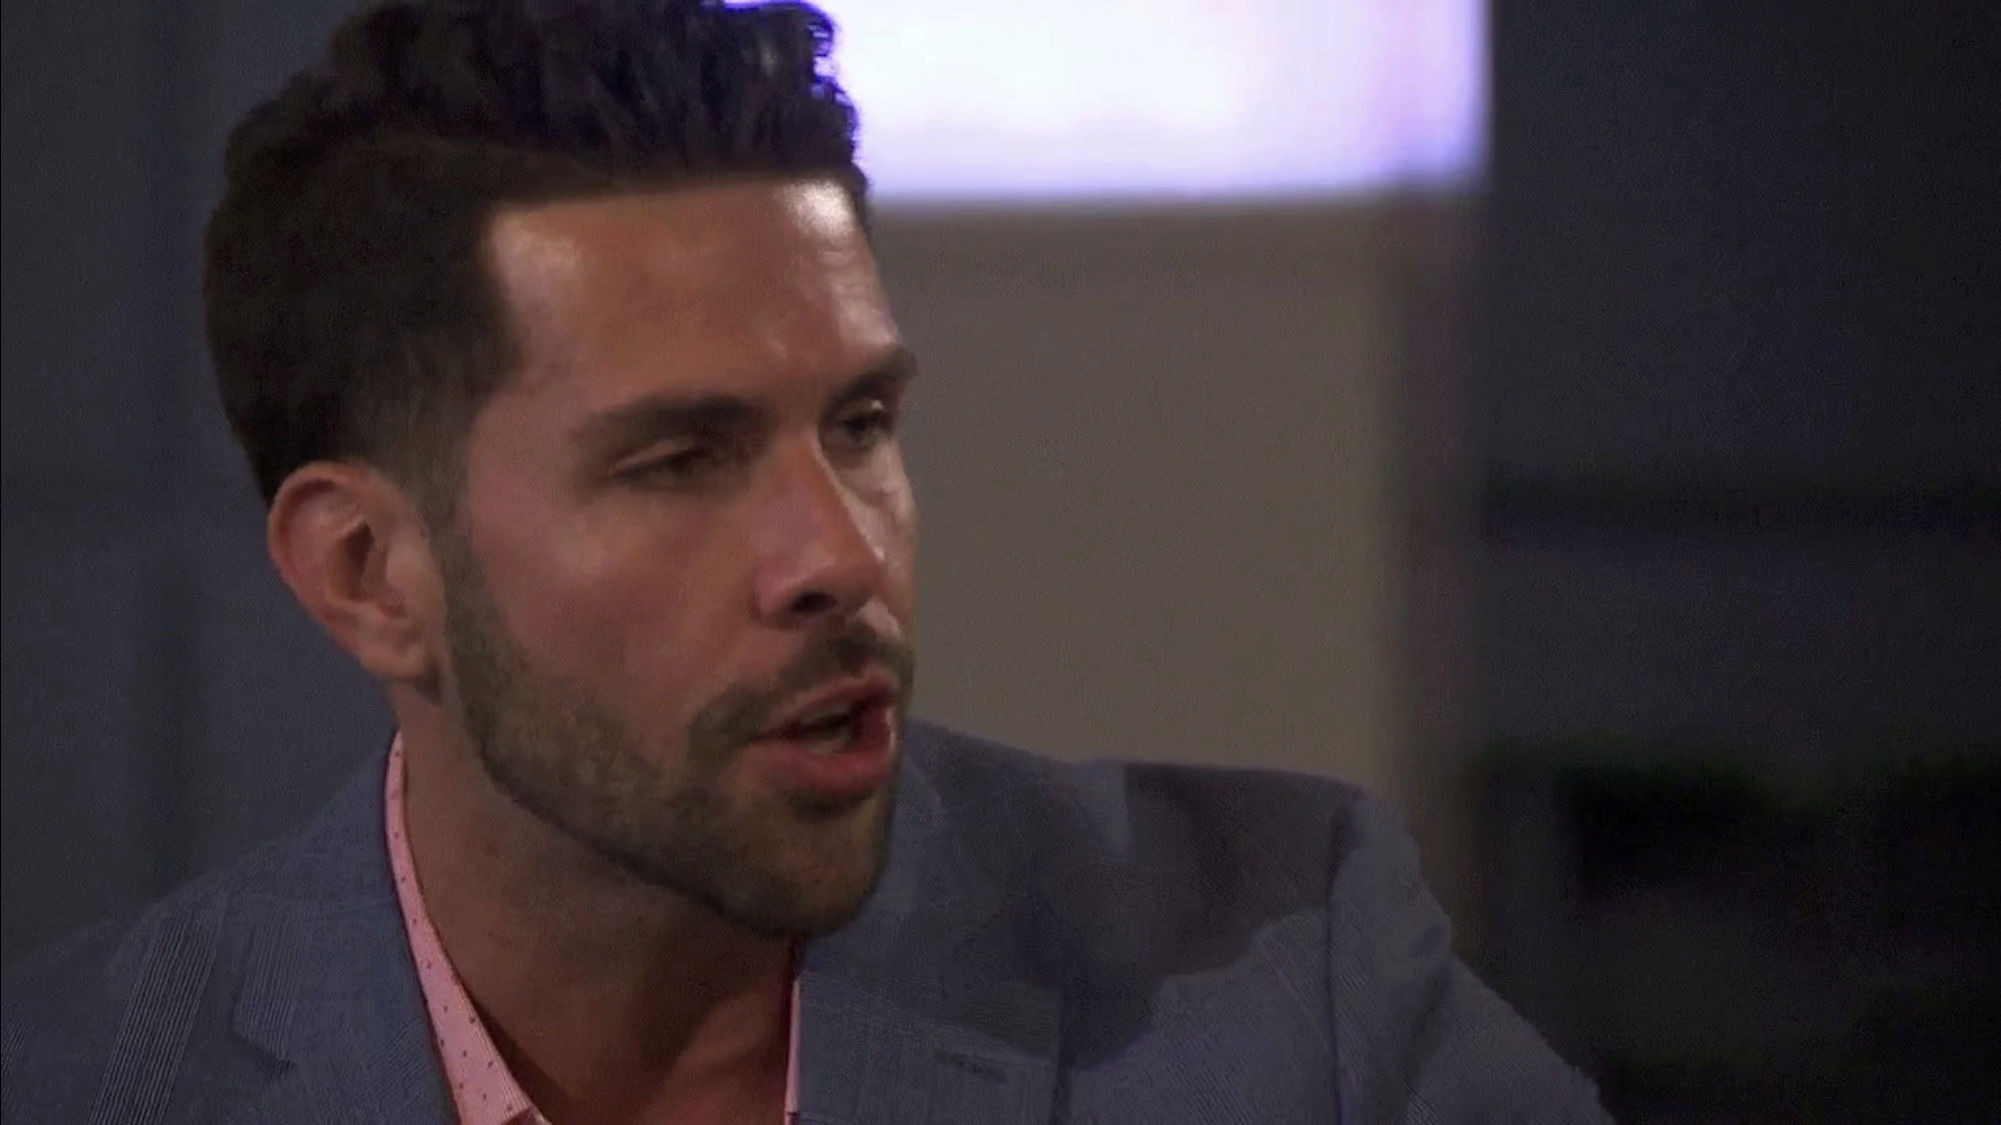 Bachelorette 14 - Becca Kufrin - ScreenCaps - NO Discussion - *Sleuthing Spoilers* 1bd54b10